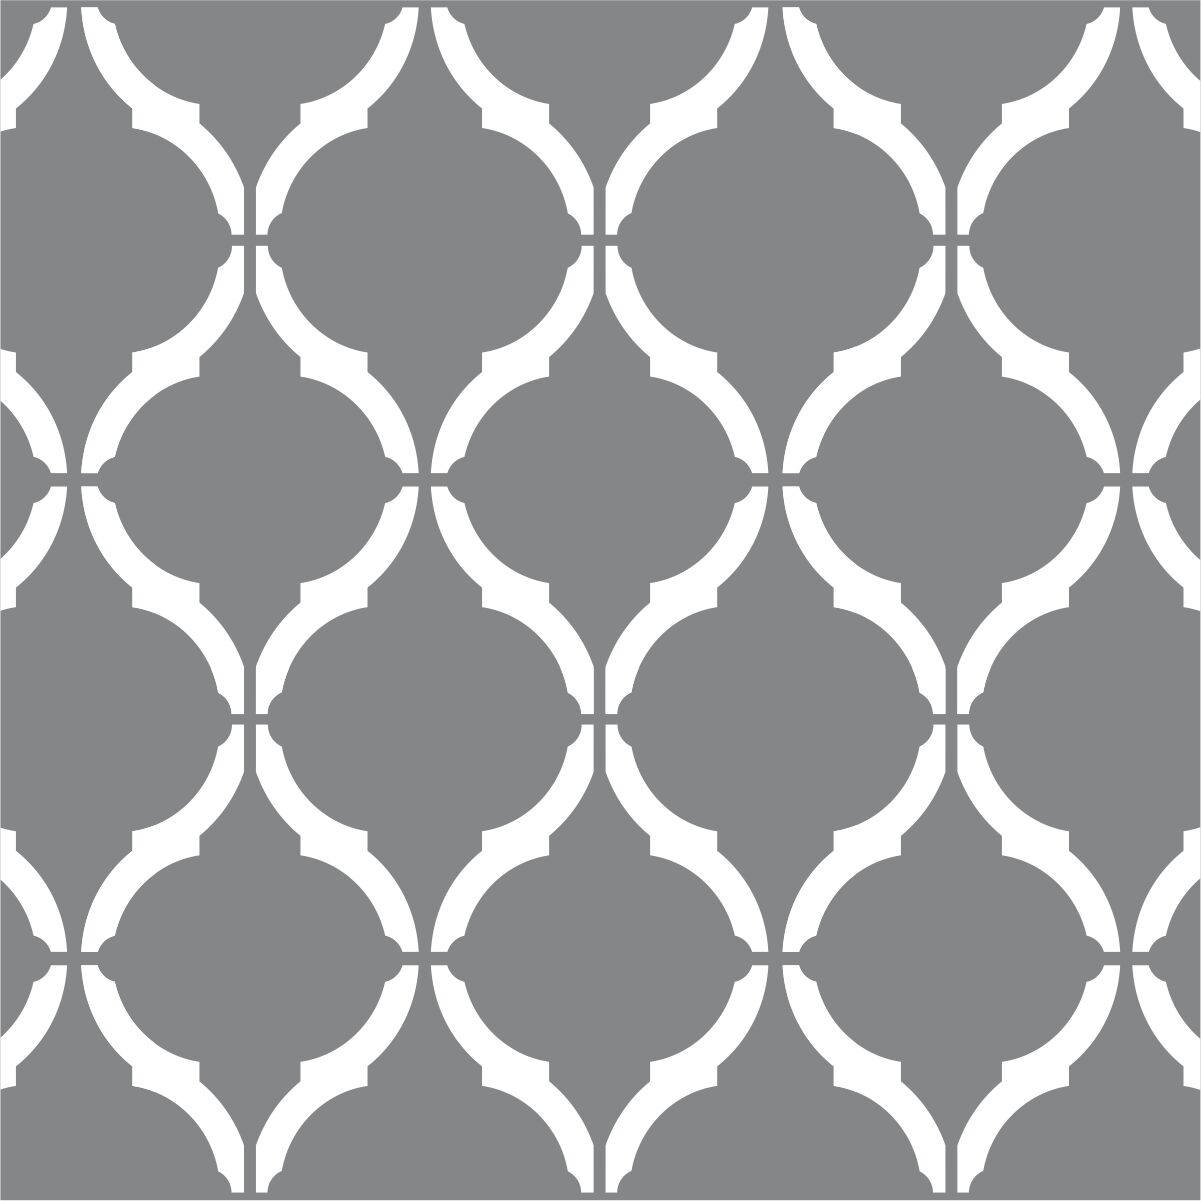 Moroccan wall stencil large 12x9 craft airbrush pattern painting picture 1 of 2 amipublicfo Image collections